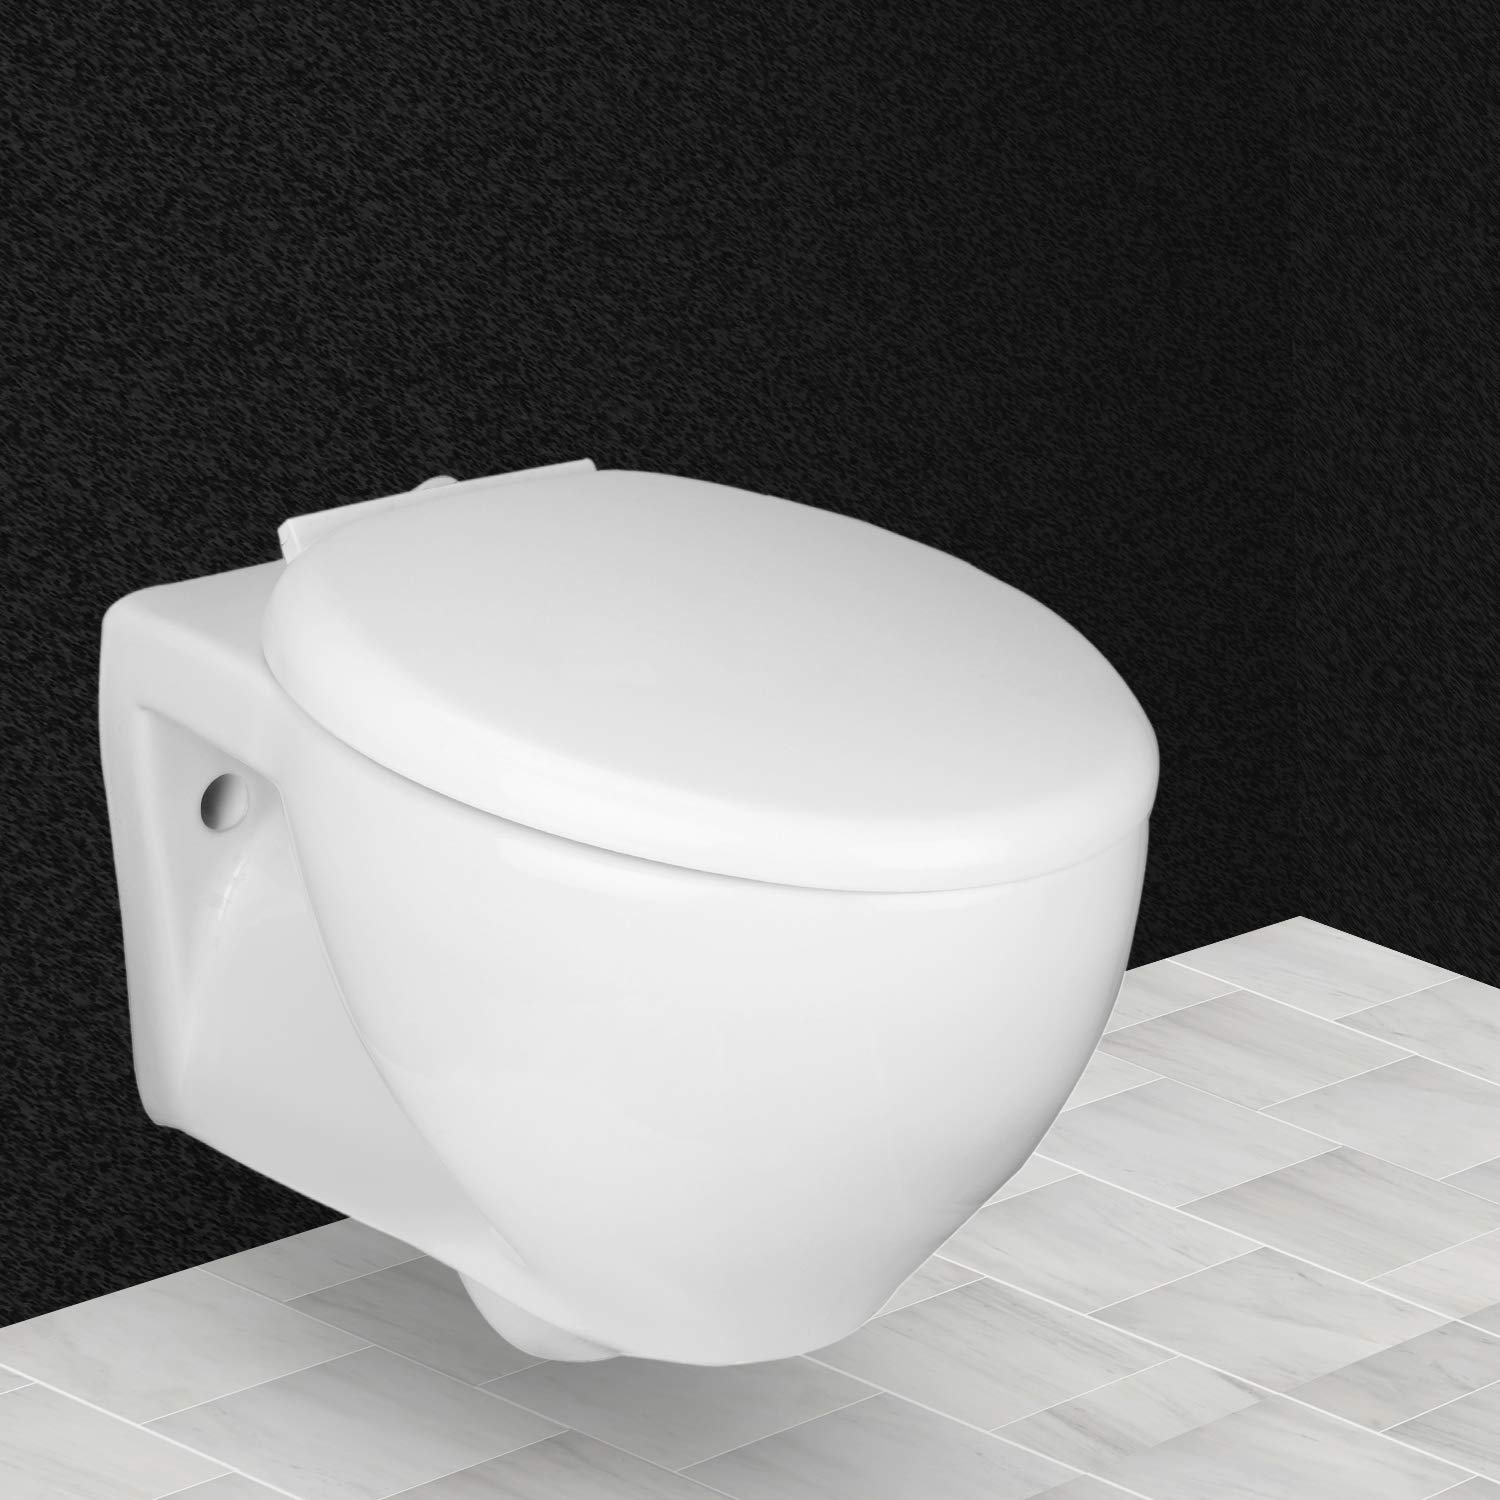 Sensational Hindware Lara One Piece Ceramic Wall Mounted Western Toilet Gmtry Best Dining Table And Chair Ideas Images Gmtryco